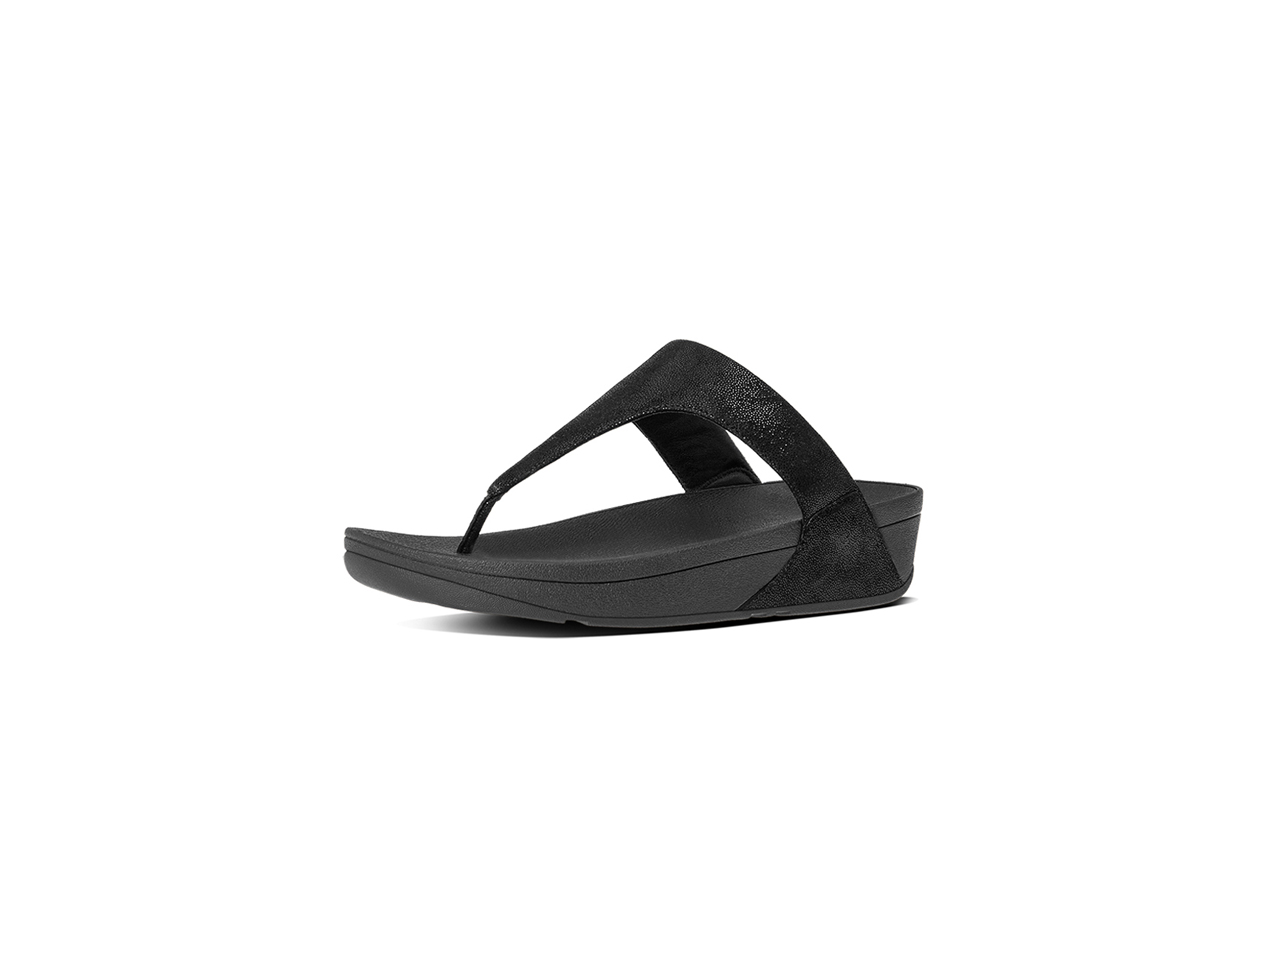 FitFlop TM - C64/403